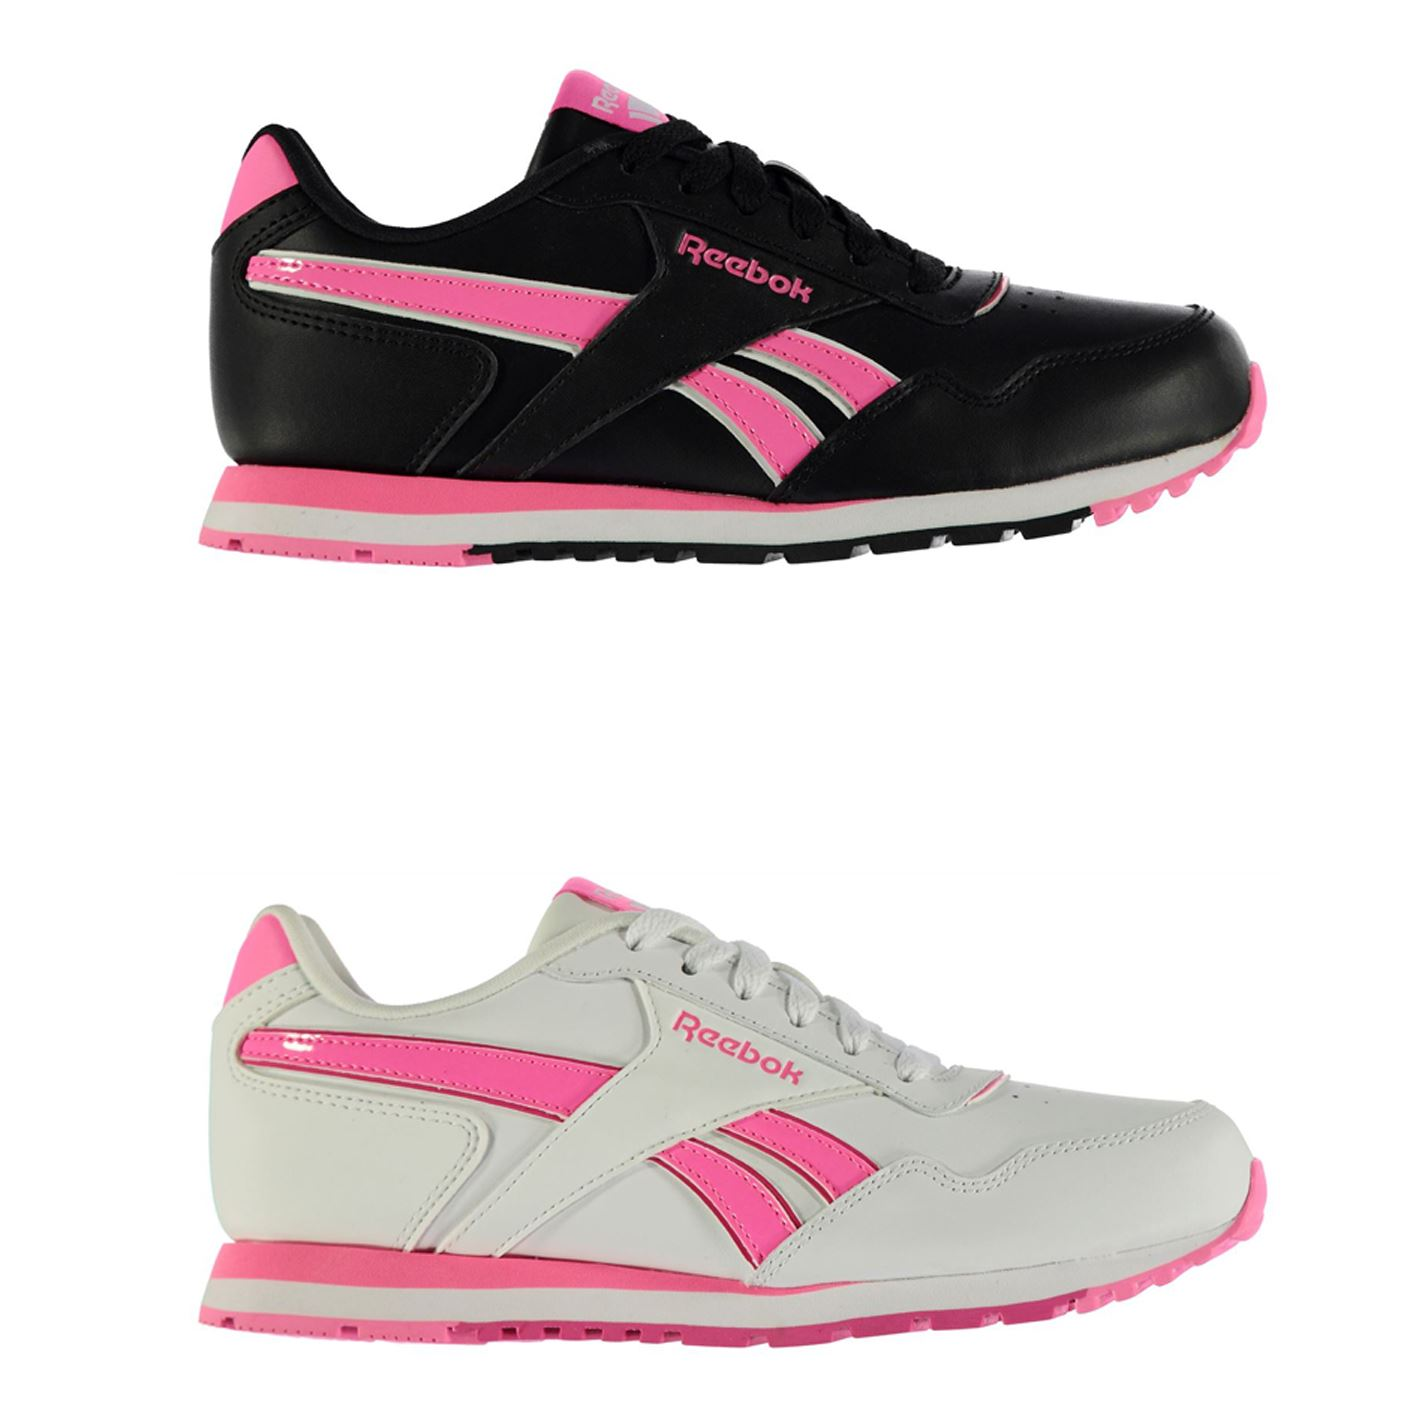 Details about Reebok Classic Glide Junior Girls Trainers Shoes Footwear